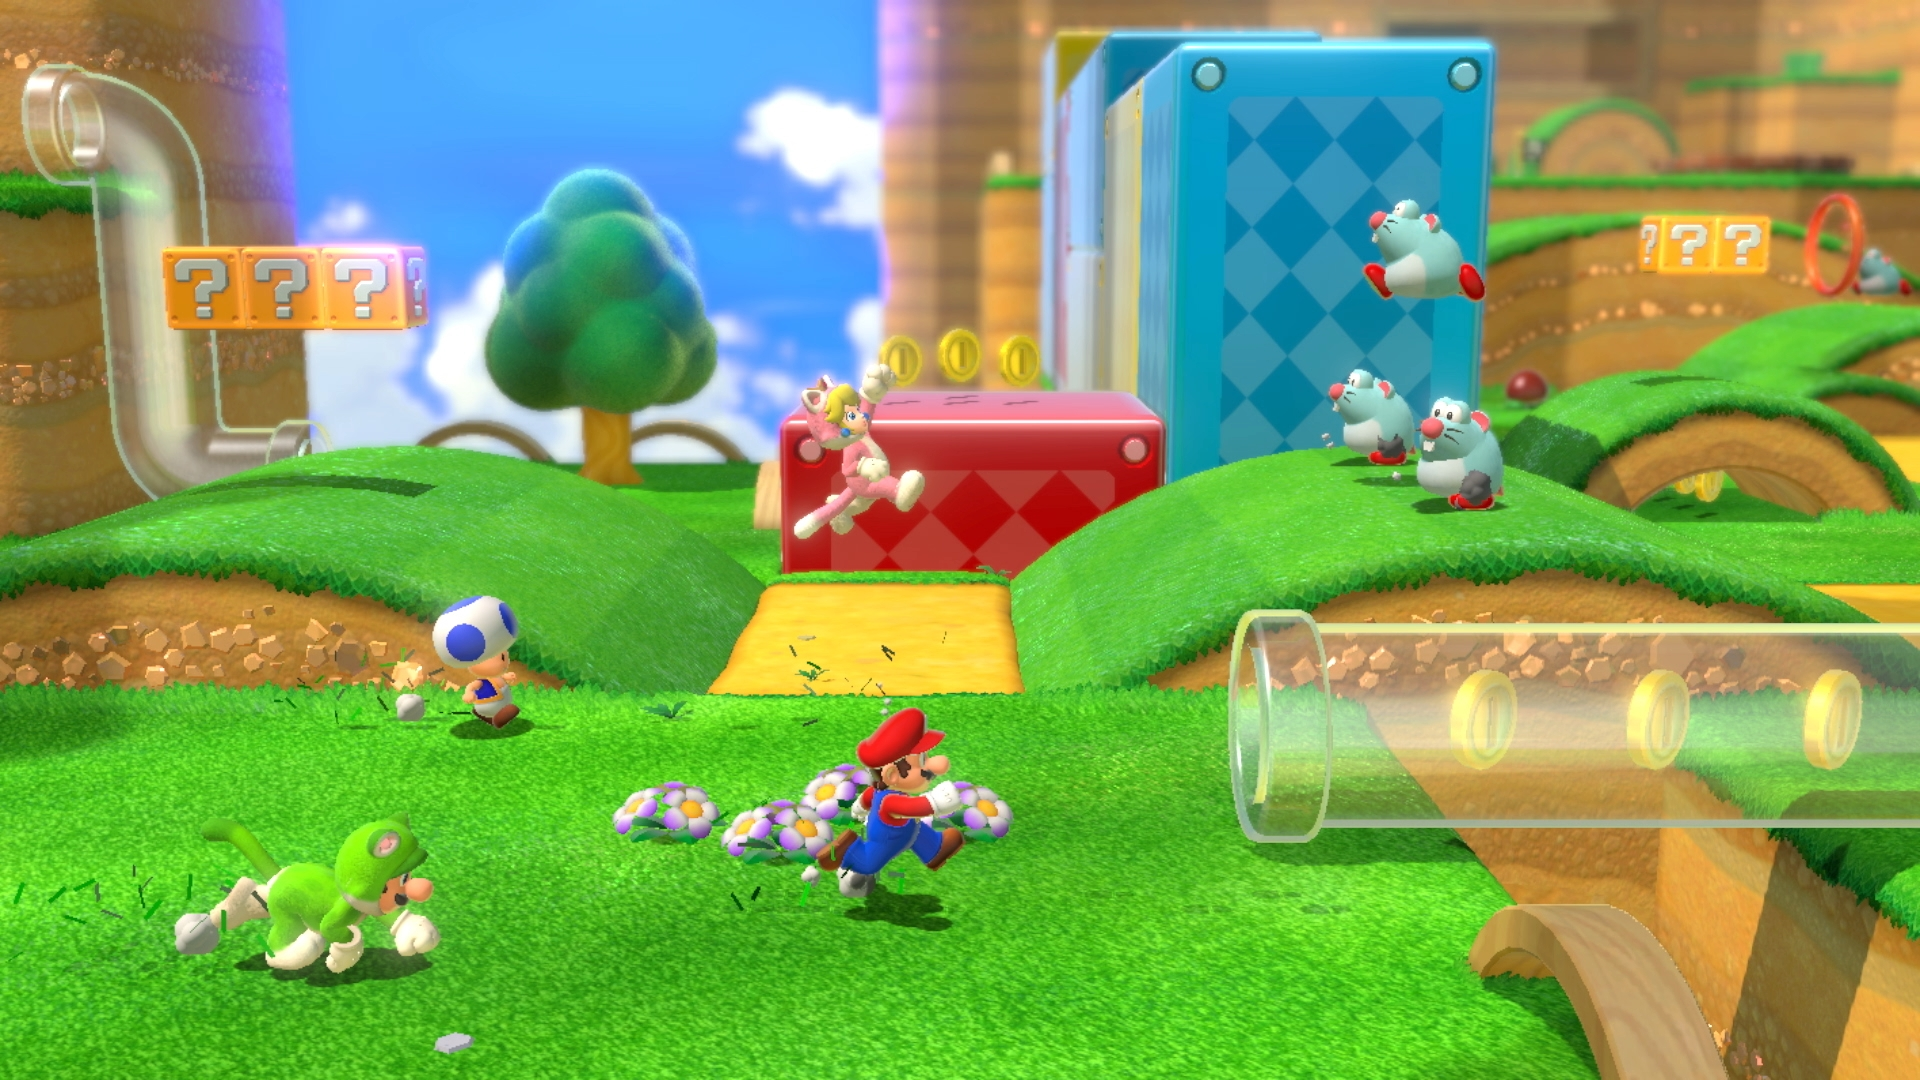 Super-Mario-3D-World-Plus-Bowsers-Fury_2021_01-12-21_003